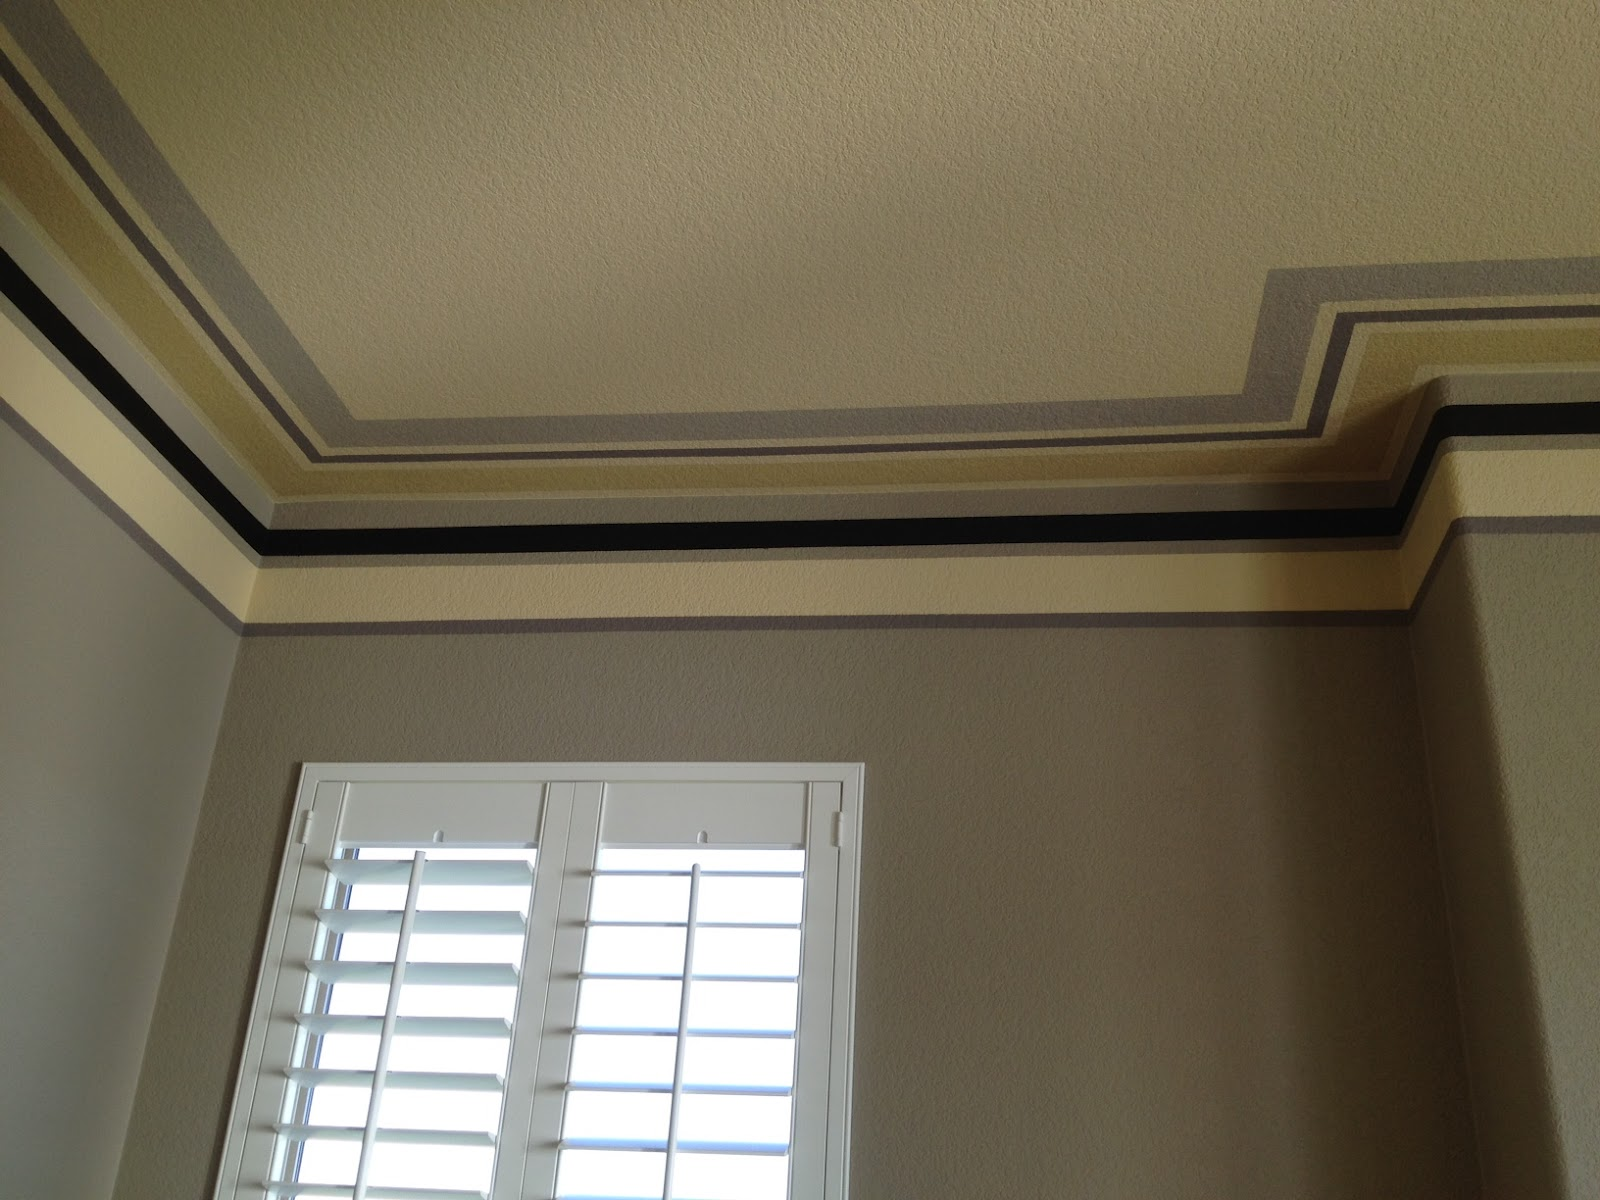 Paint Instead Of Crown Molding